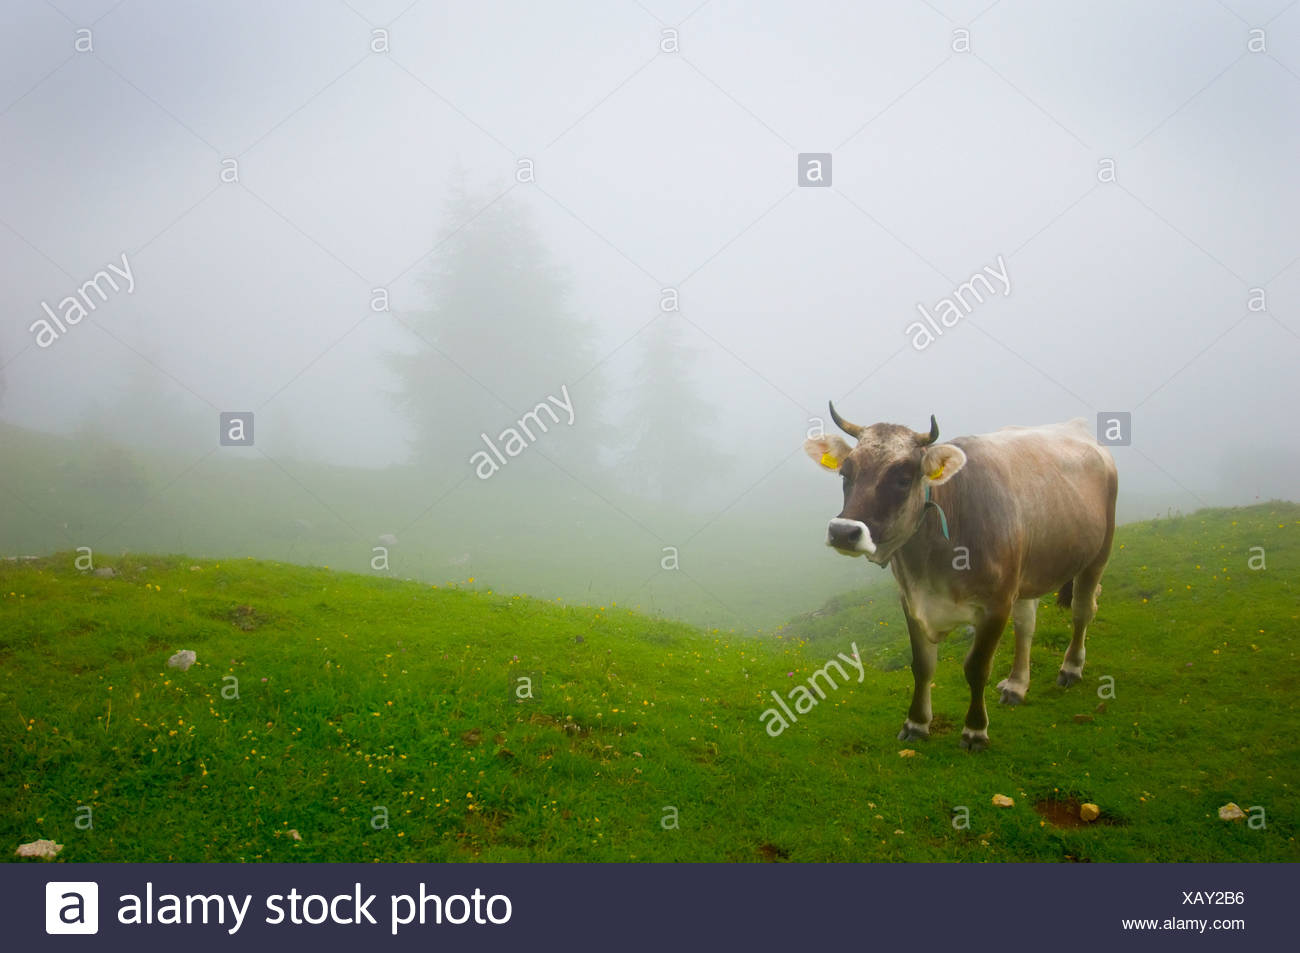 A Cow In A Pasture In The Fog; Veneto Italy - Stock Image